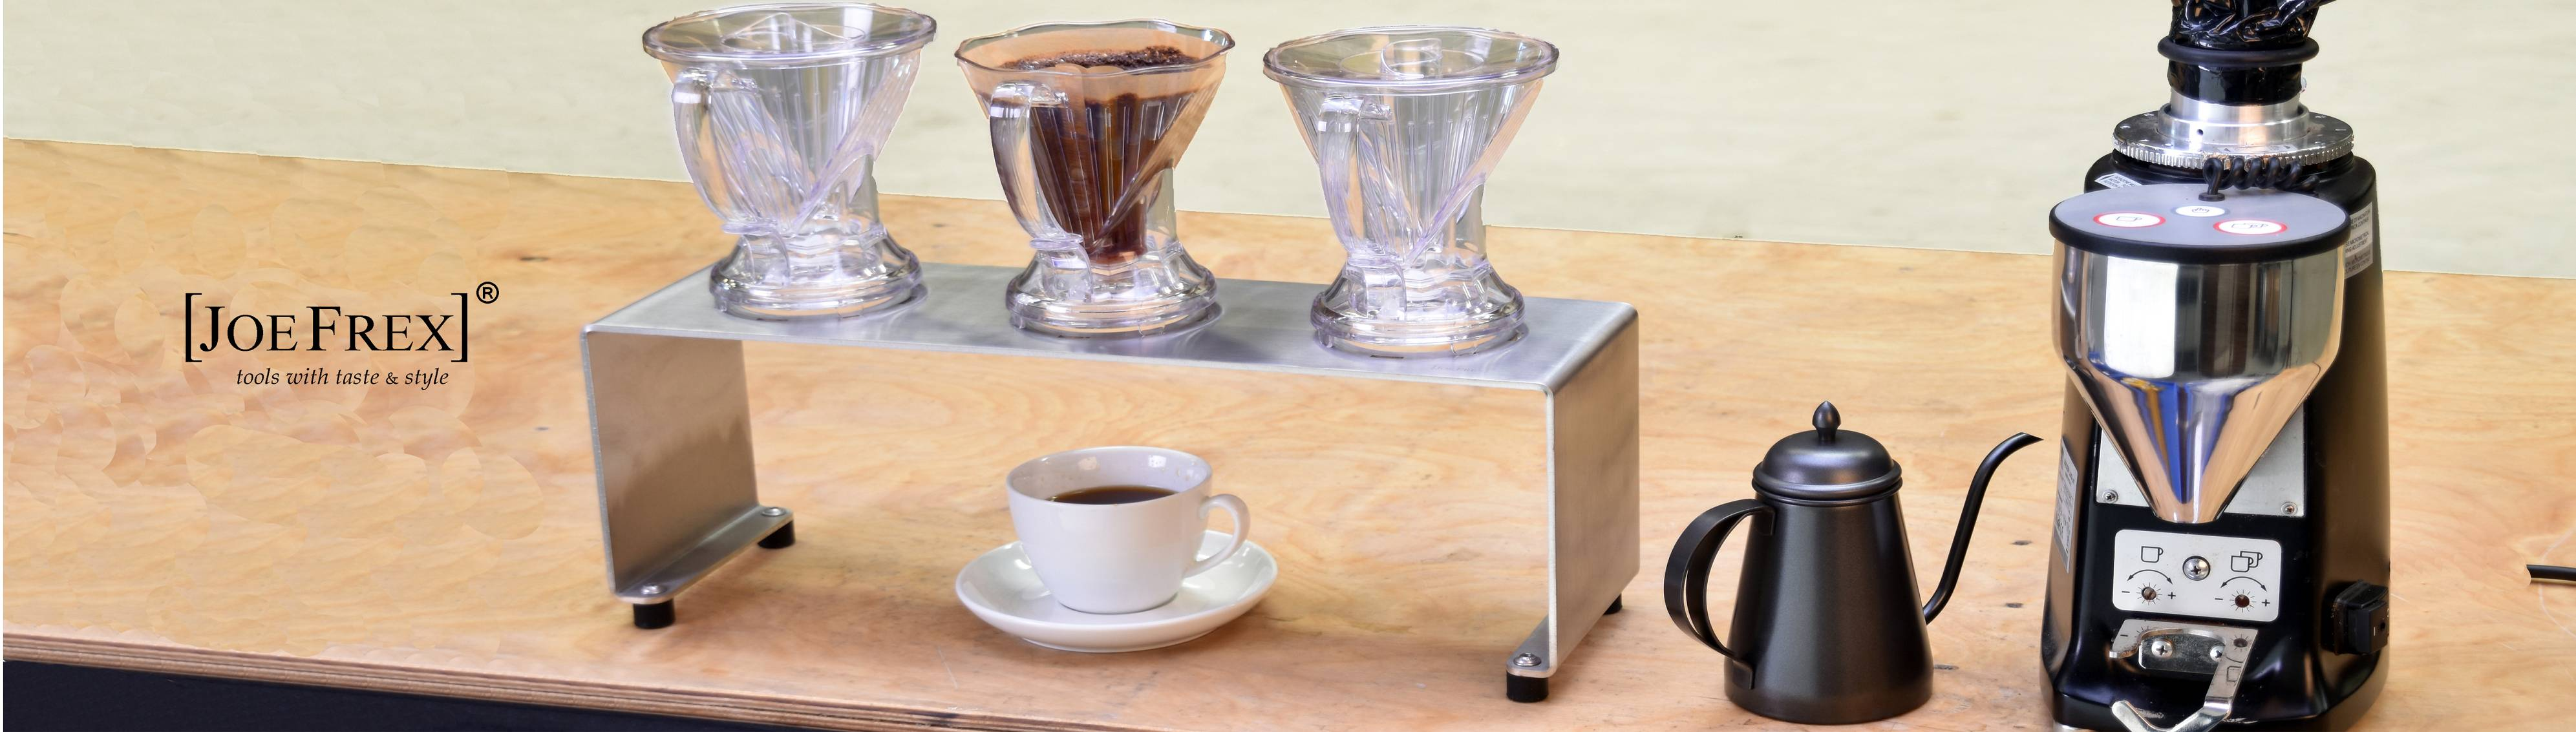 k-8_coffee_brewing_fresh_pour_over